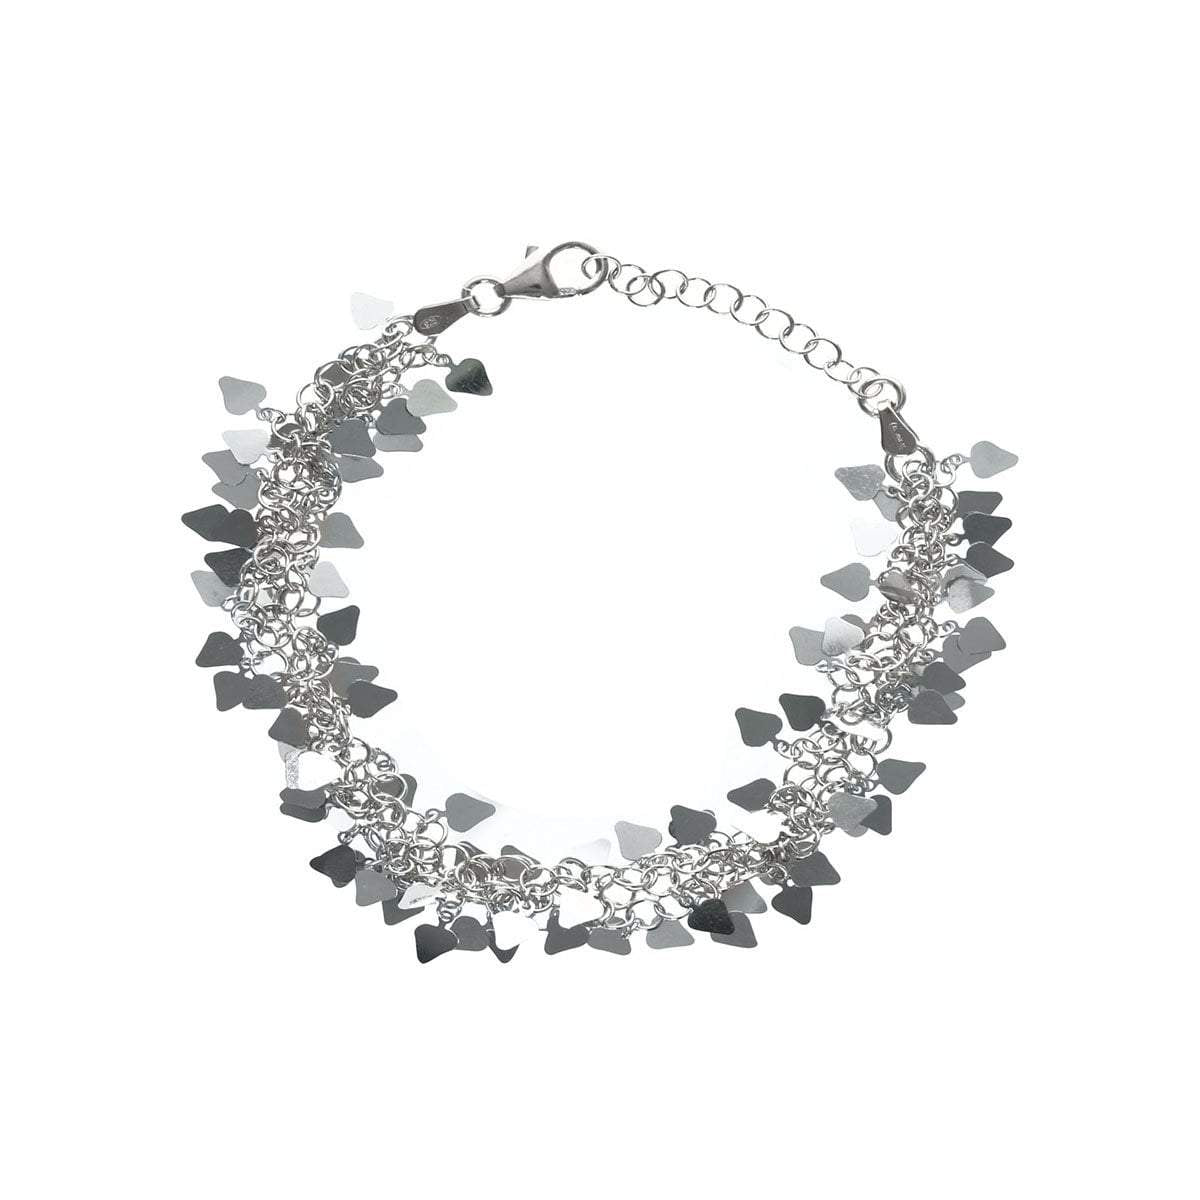 Multi-Heart Tag Bracelet in Sterling Silver with Rhodium Finish